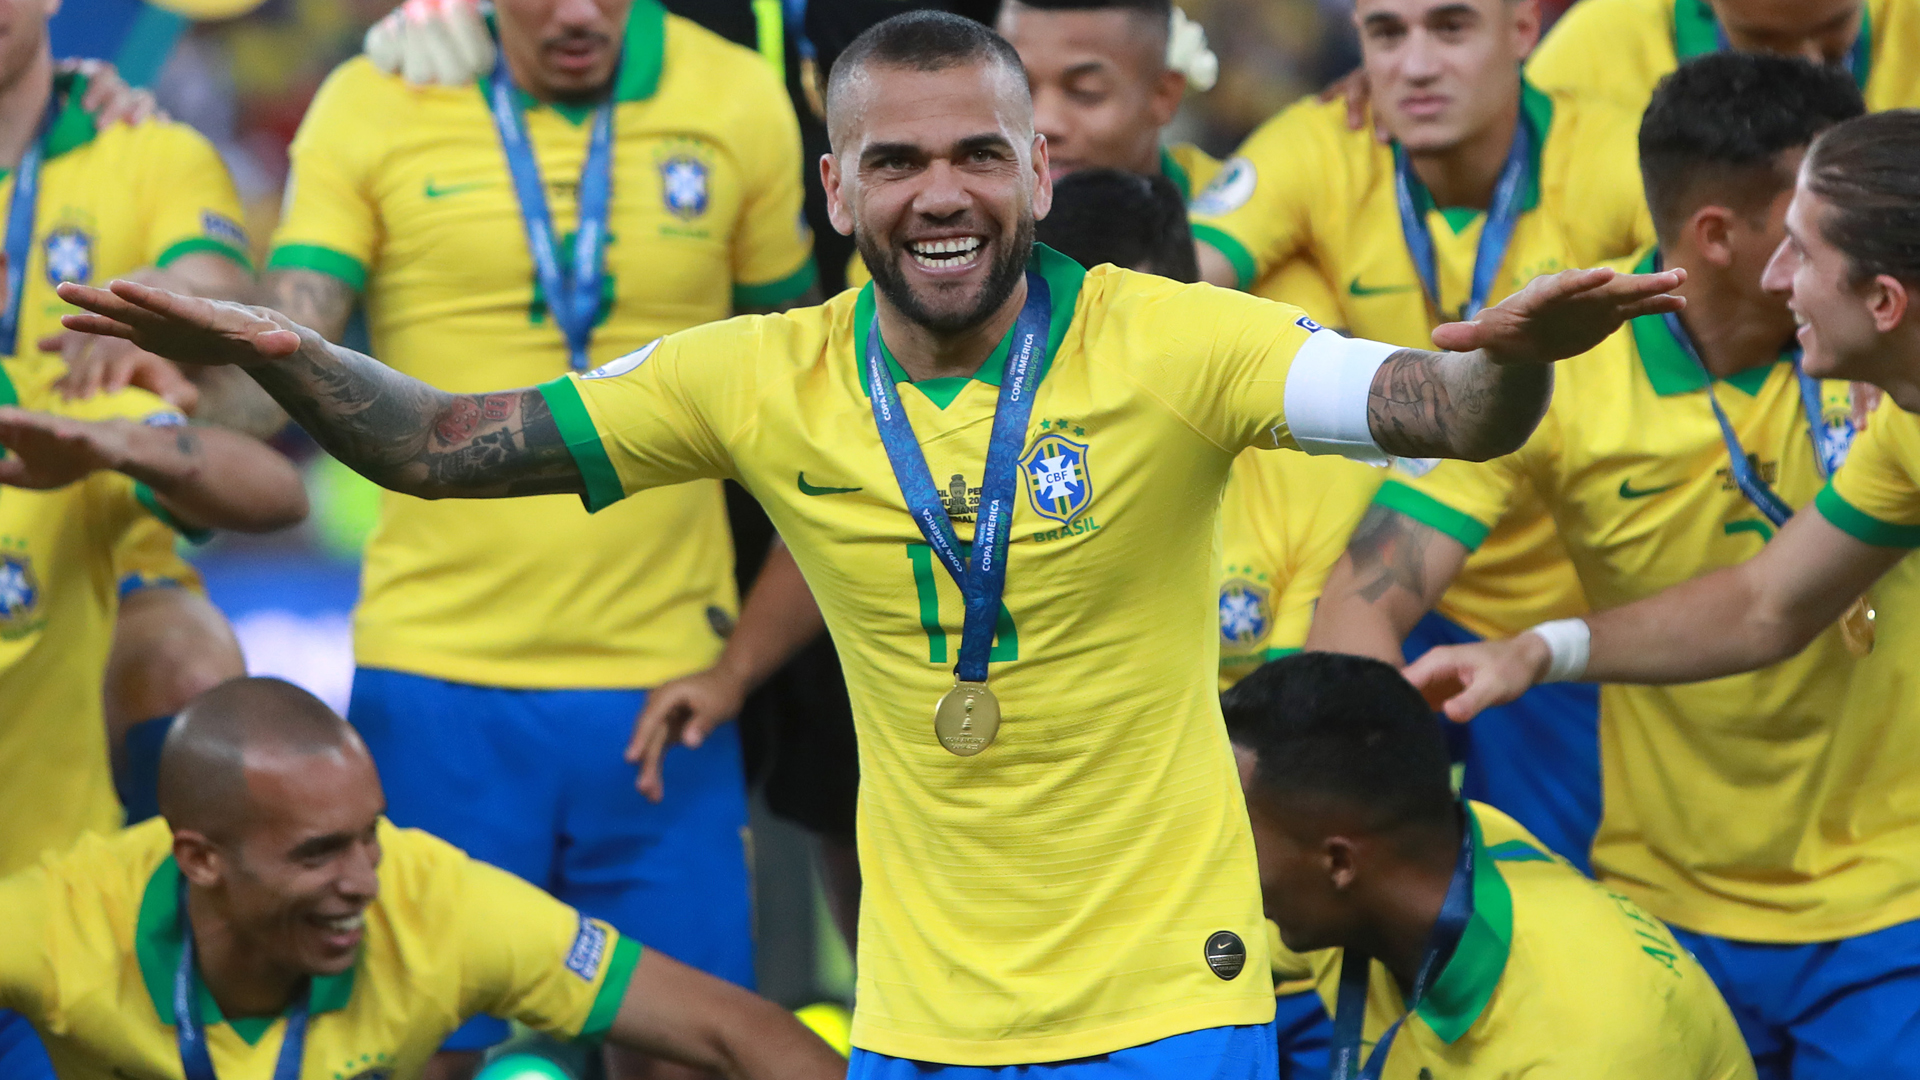 Alves targets history with Sao Paulo, eyes 2022 World Cup